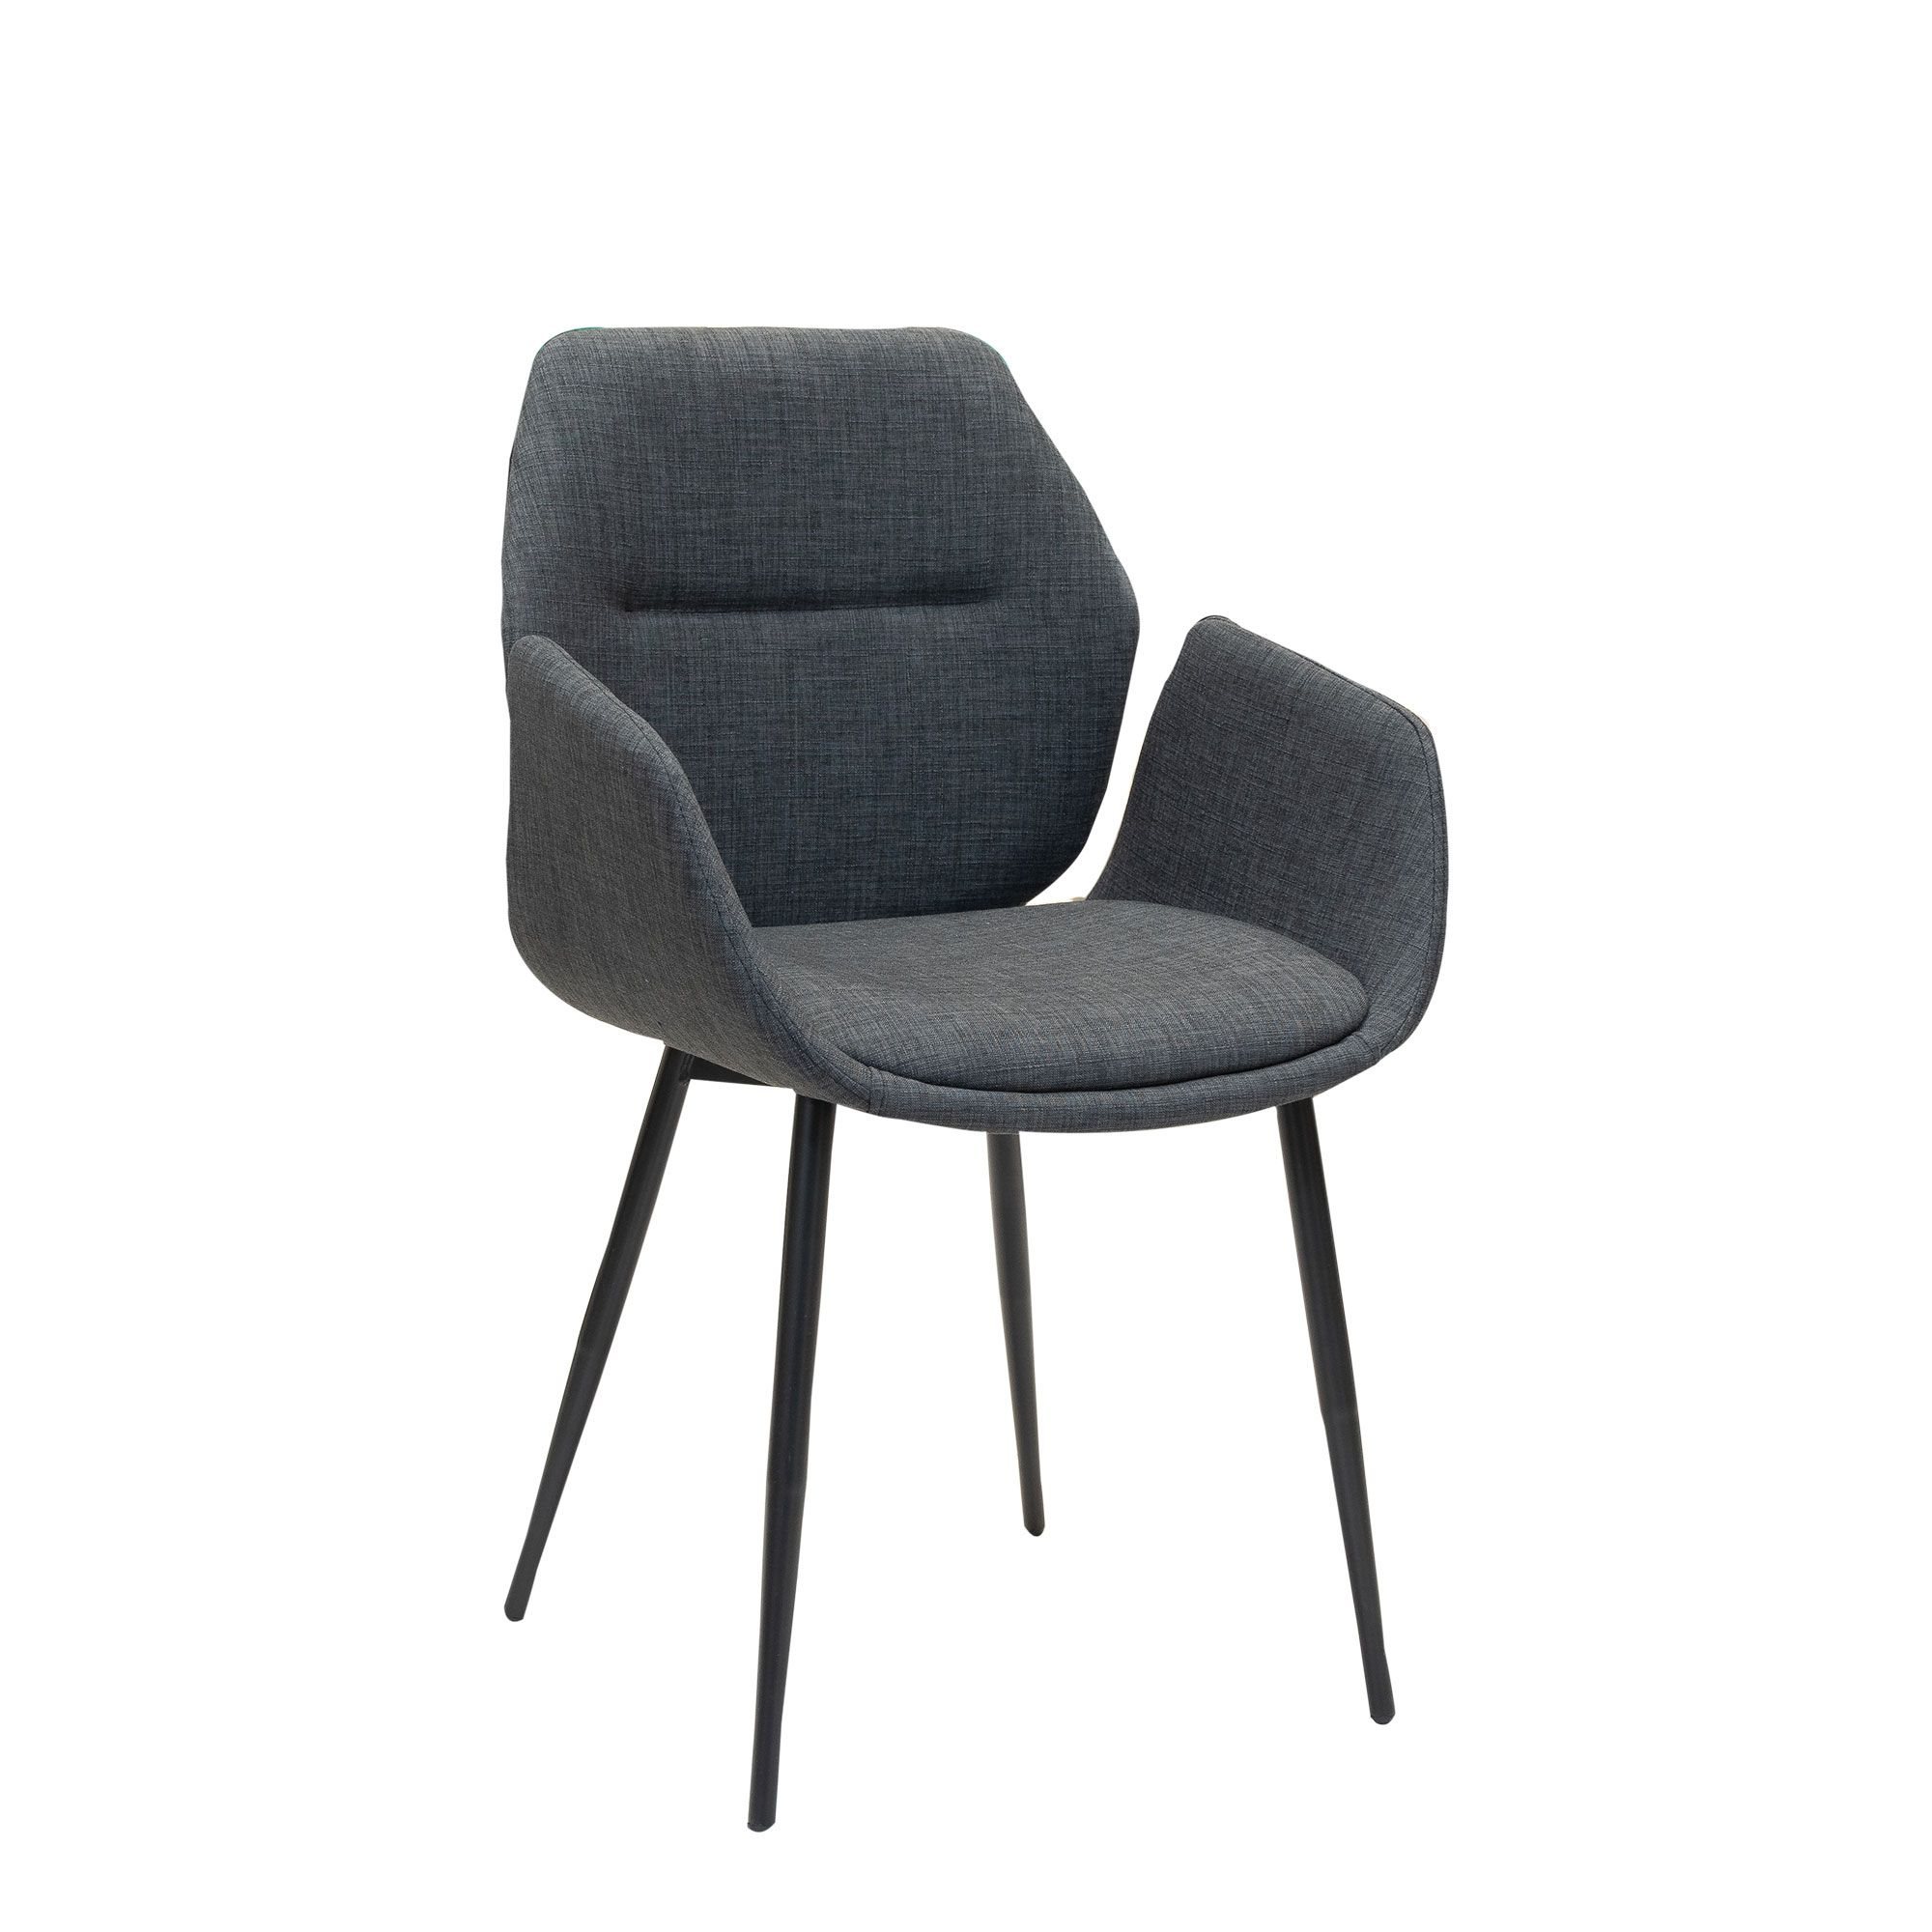 Strange Zanidy Accent Chair Grey Accent Chair Greychair Small Gmtry Best Dining Table And Chair Ideas Images Gmtryco